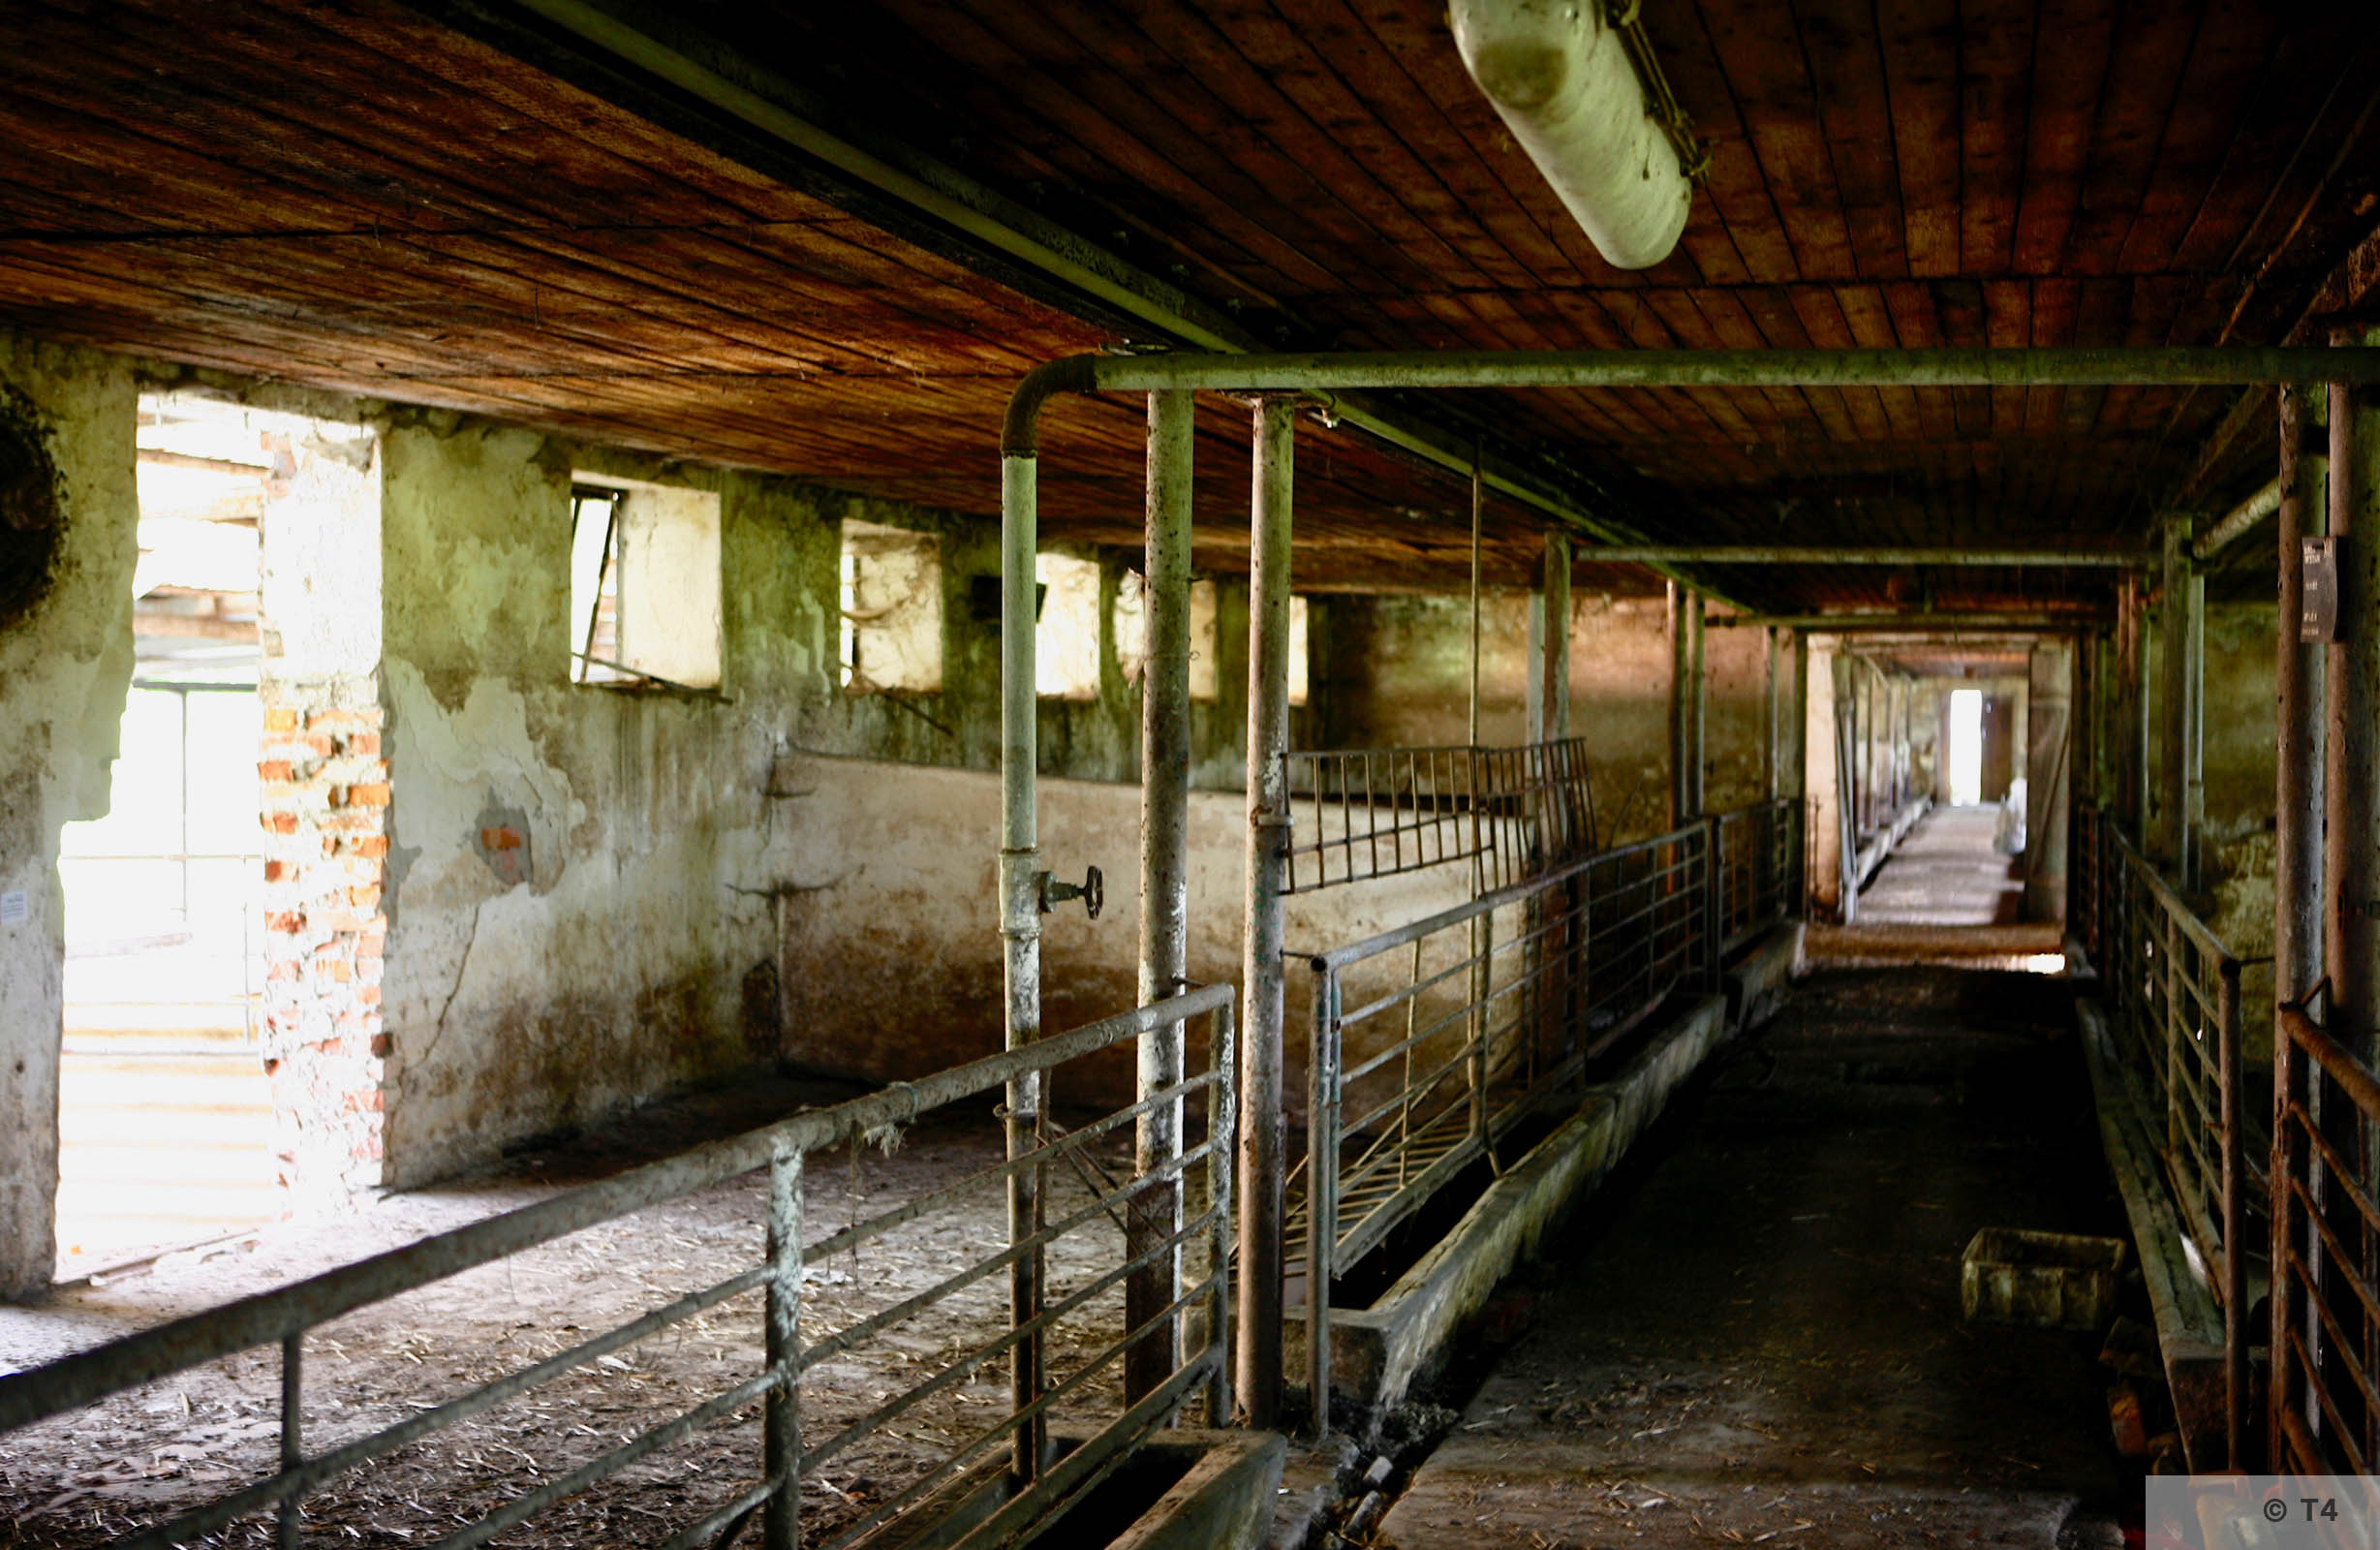 Interior of single story stable block where Kapos lived and hospital. 2006 T4 6764